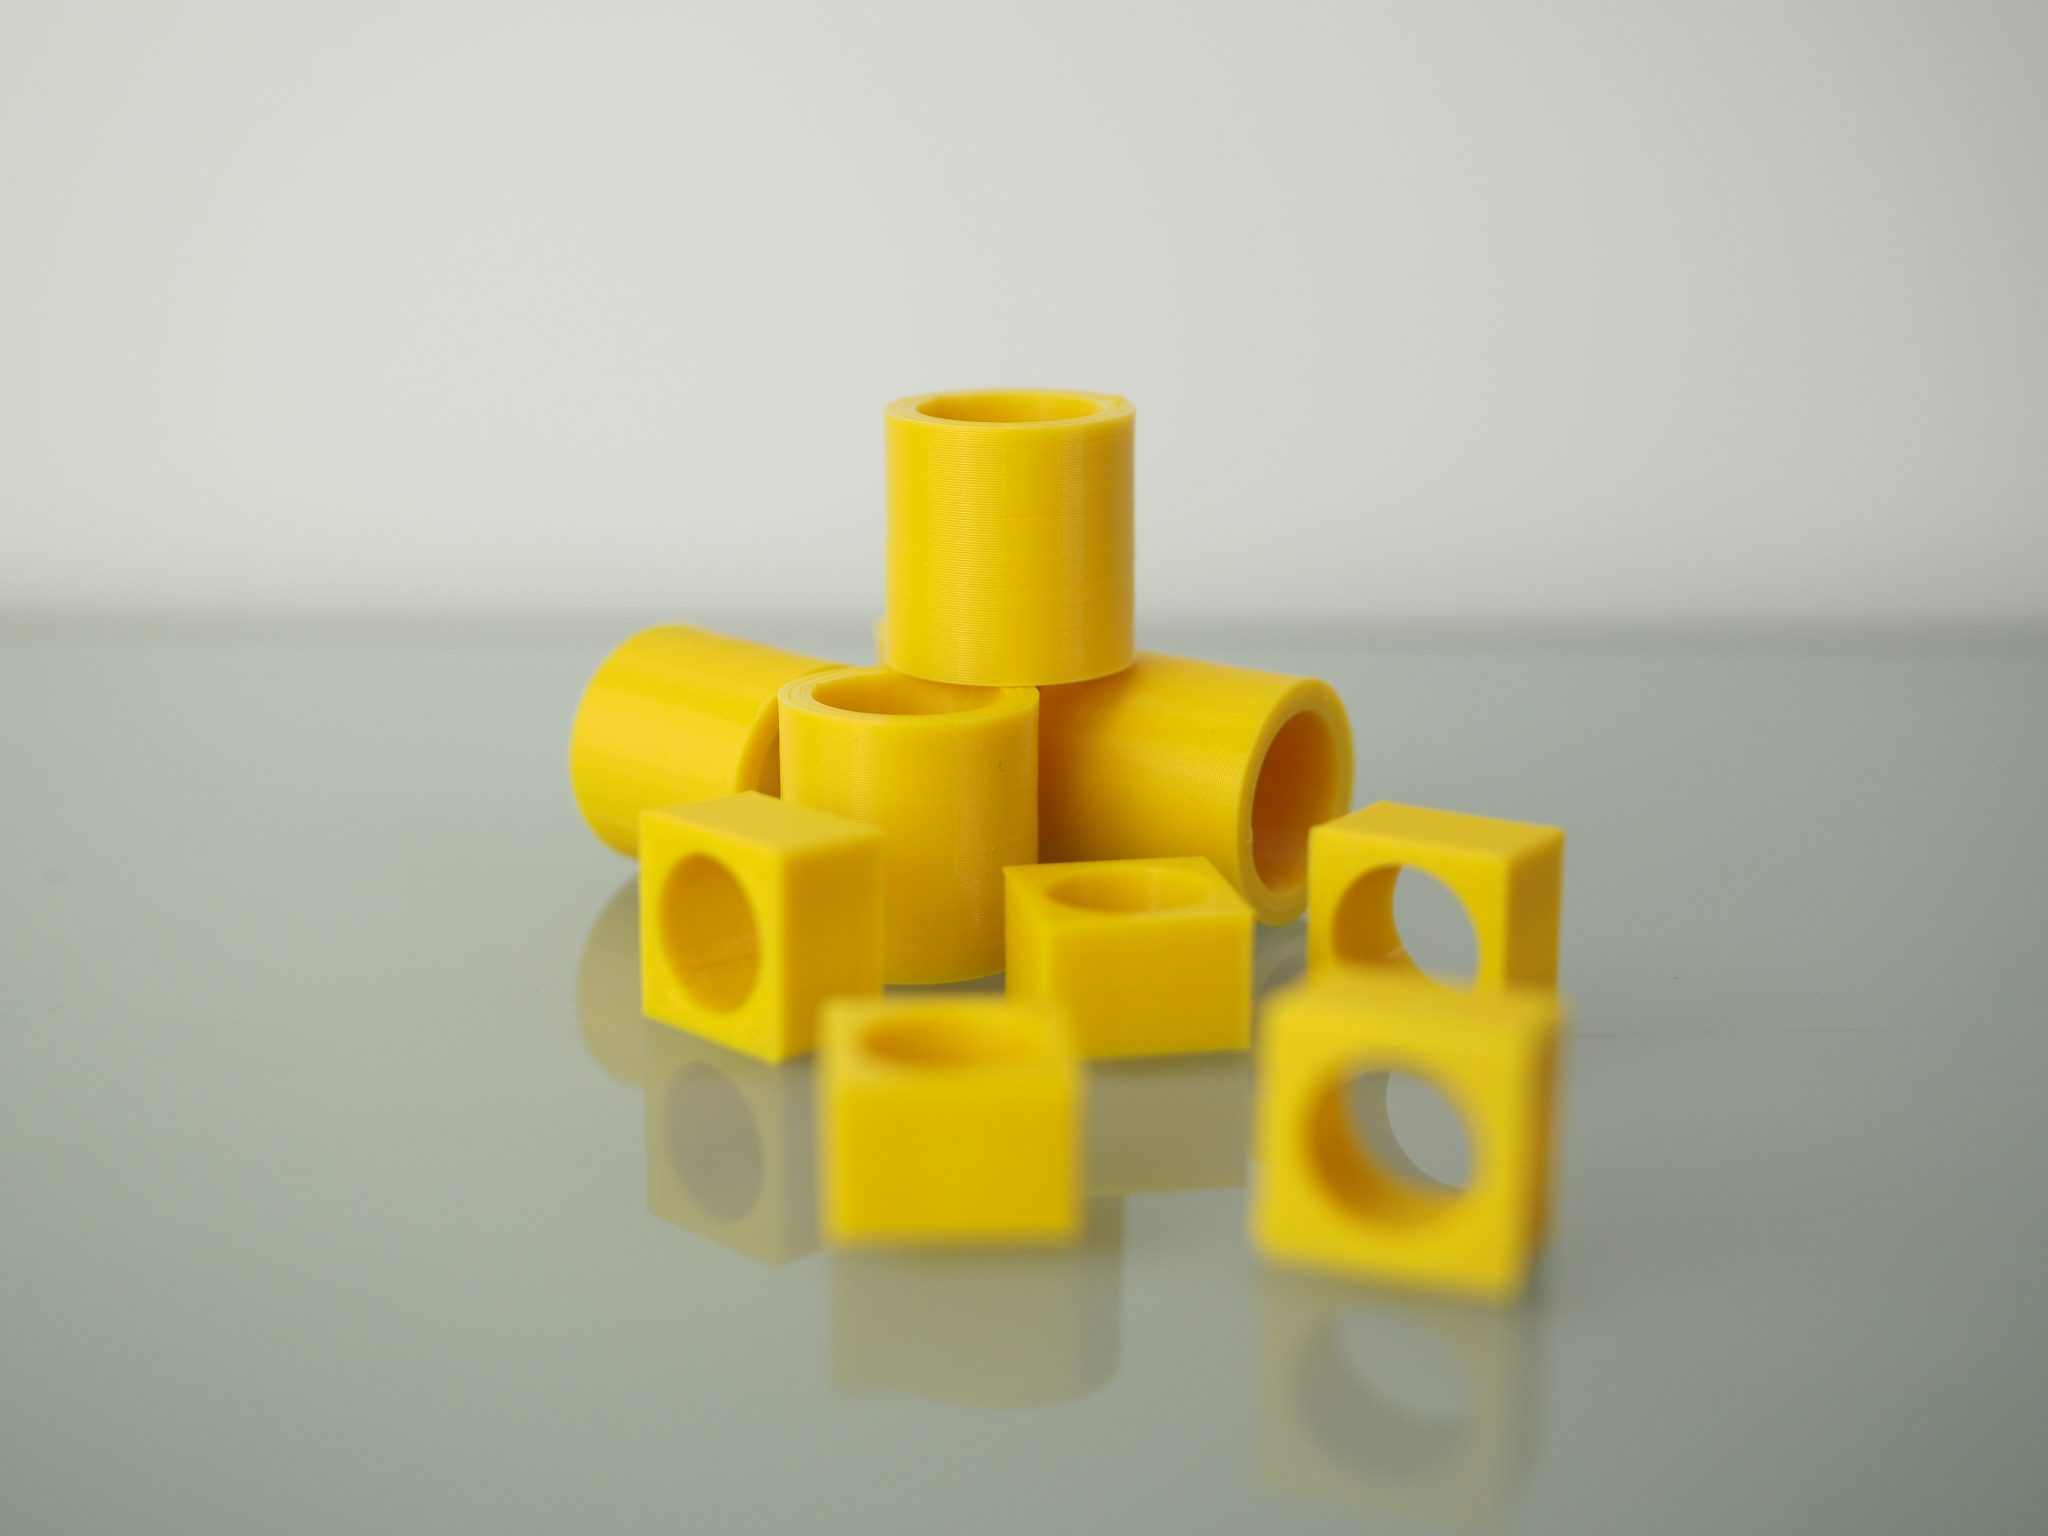 The models used in the repeatability test. Photo by 3D Printing Industry.